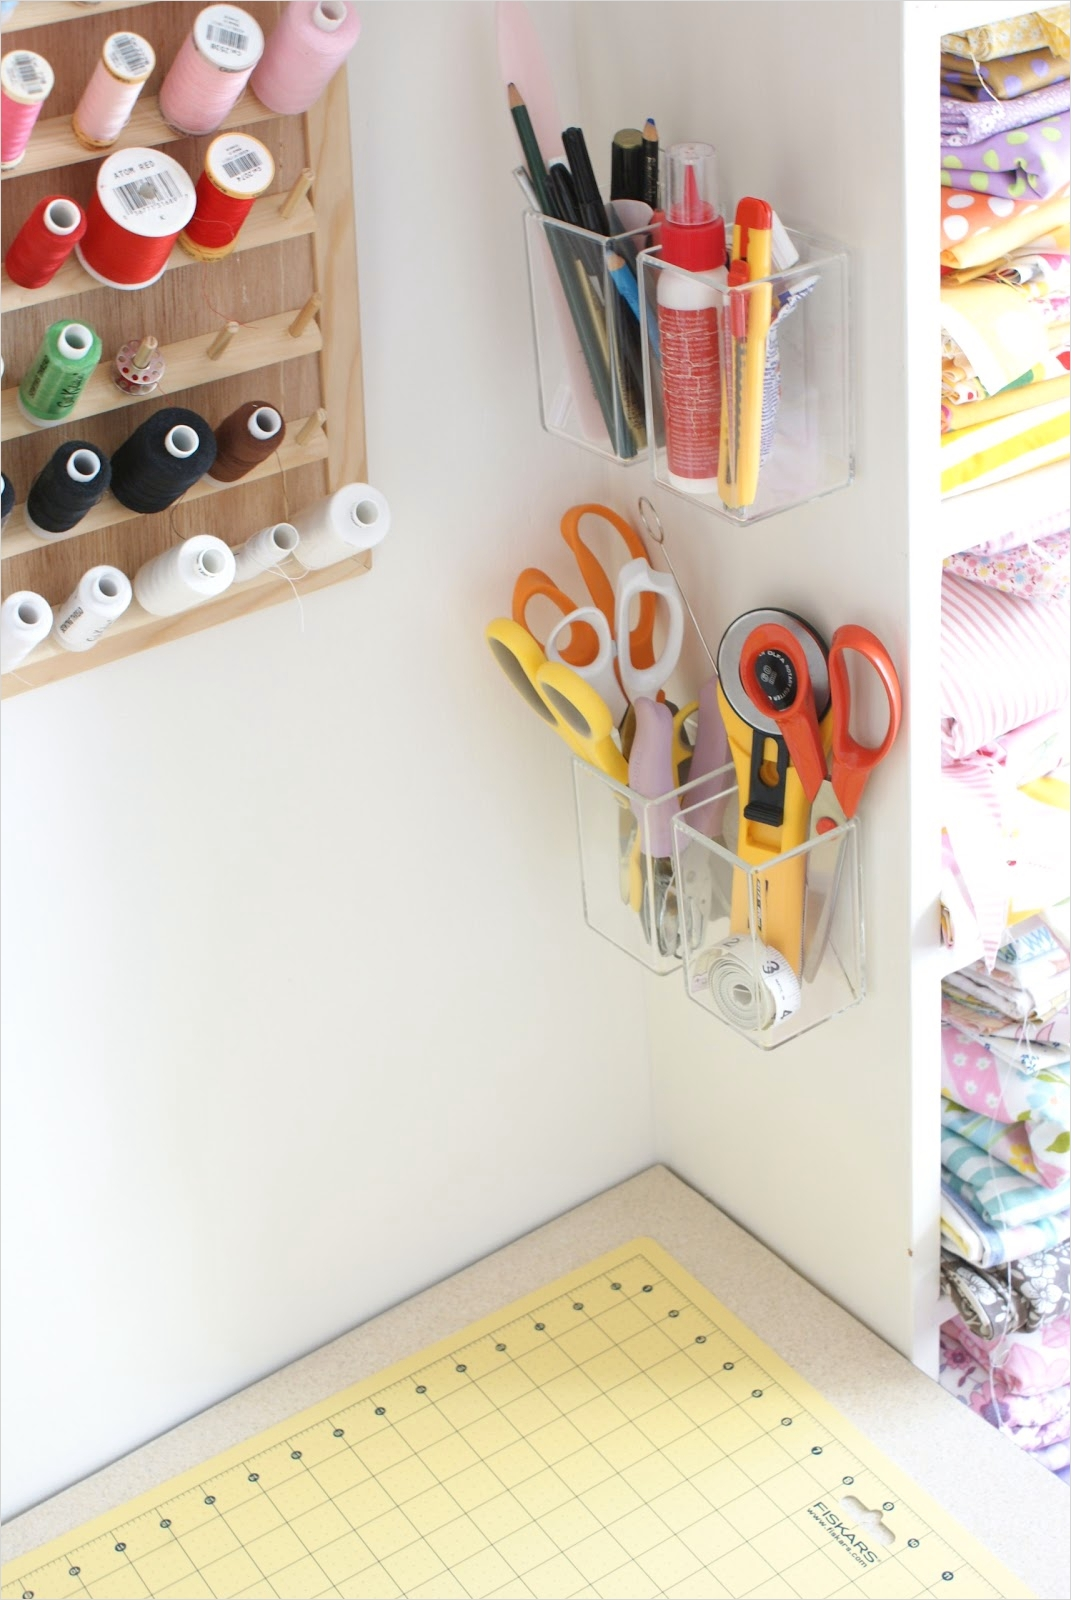 Craft Room Wall Shelving 53 Messyjesse A Quilt Blog by Jessie Fincham Craft Room Idea Wall Storage 1